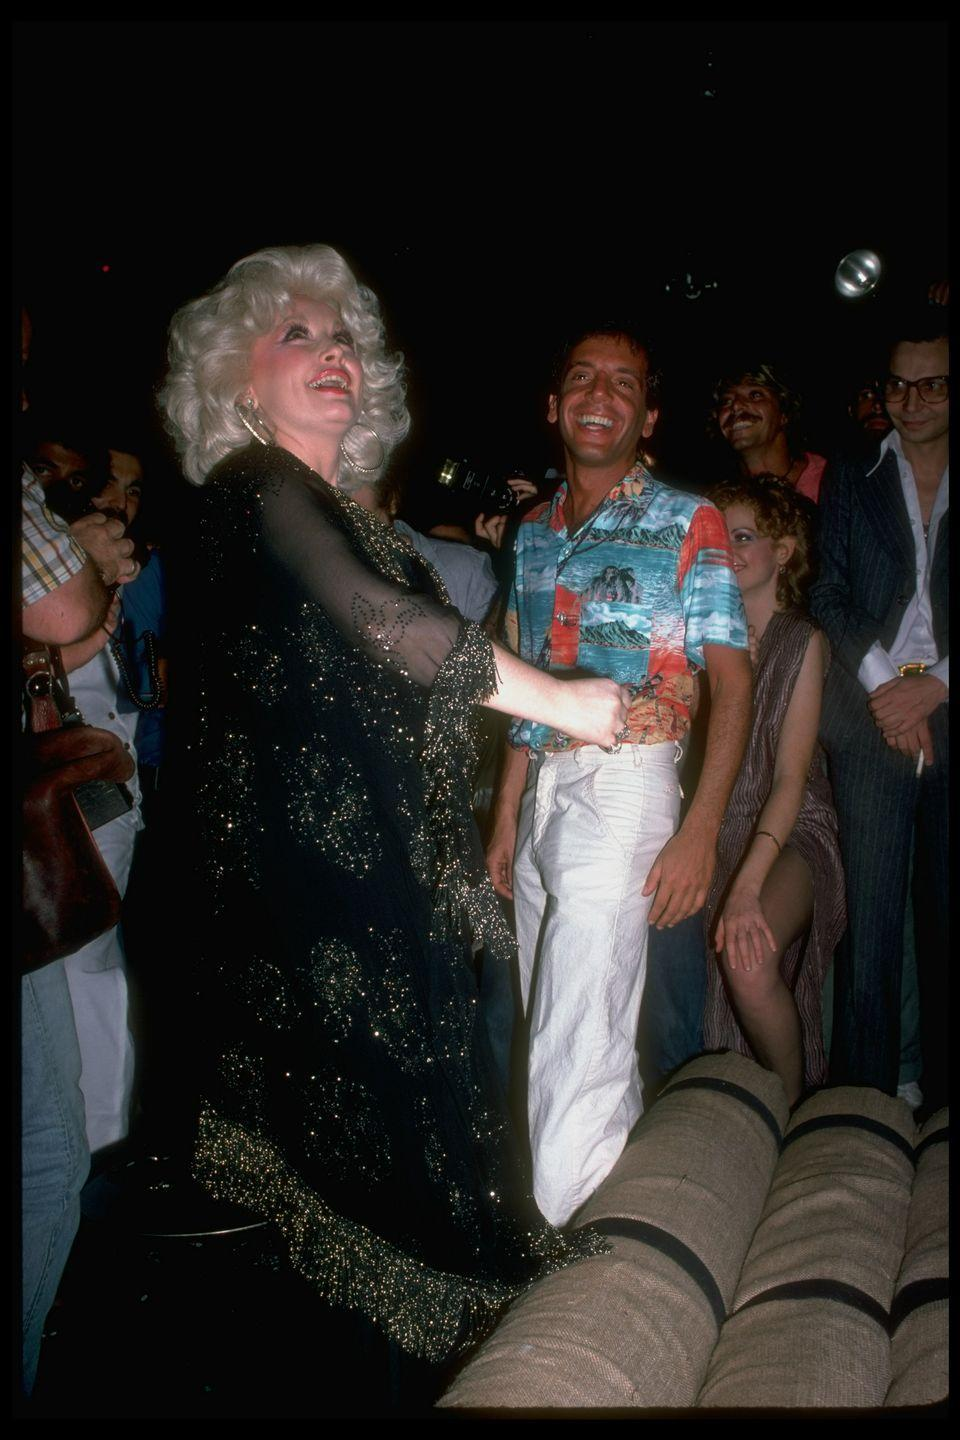 <p>Dolly Parton stuns in her typical fashion as she dances with Studio 54 owner, Steve Rubell, at the New York City nightclub in 1978.</p>